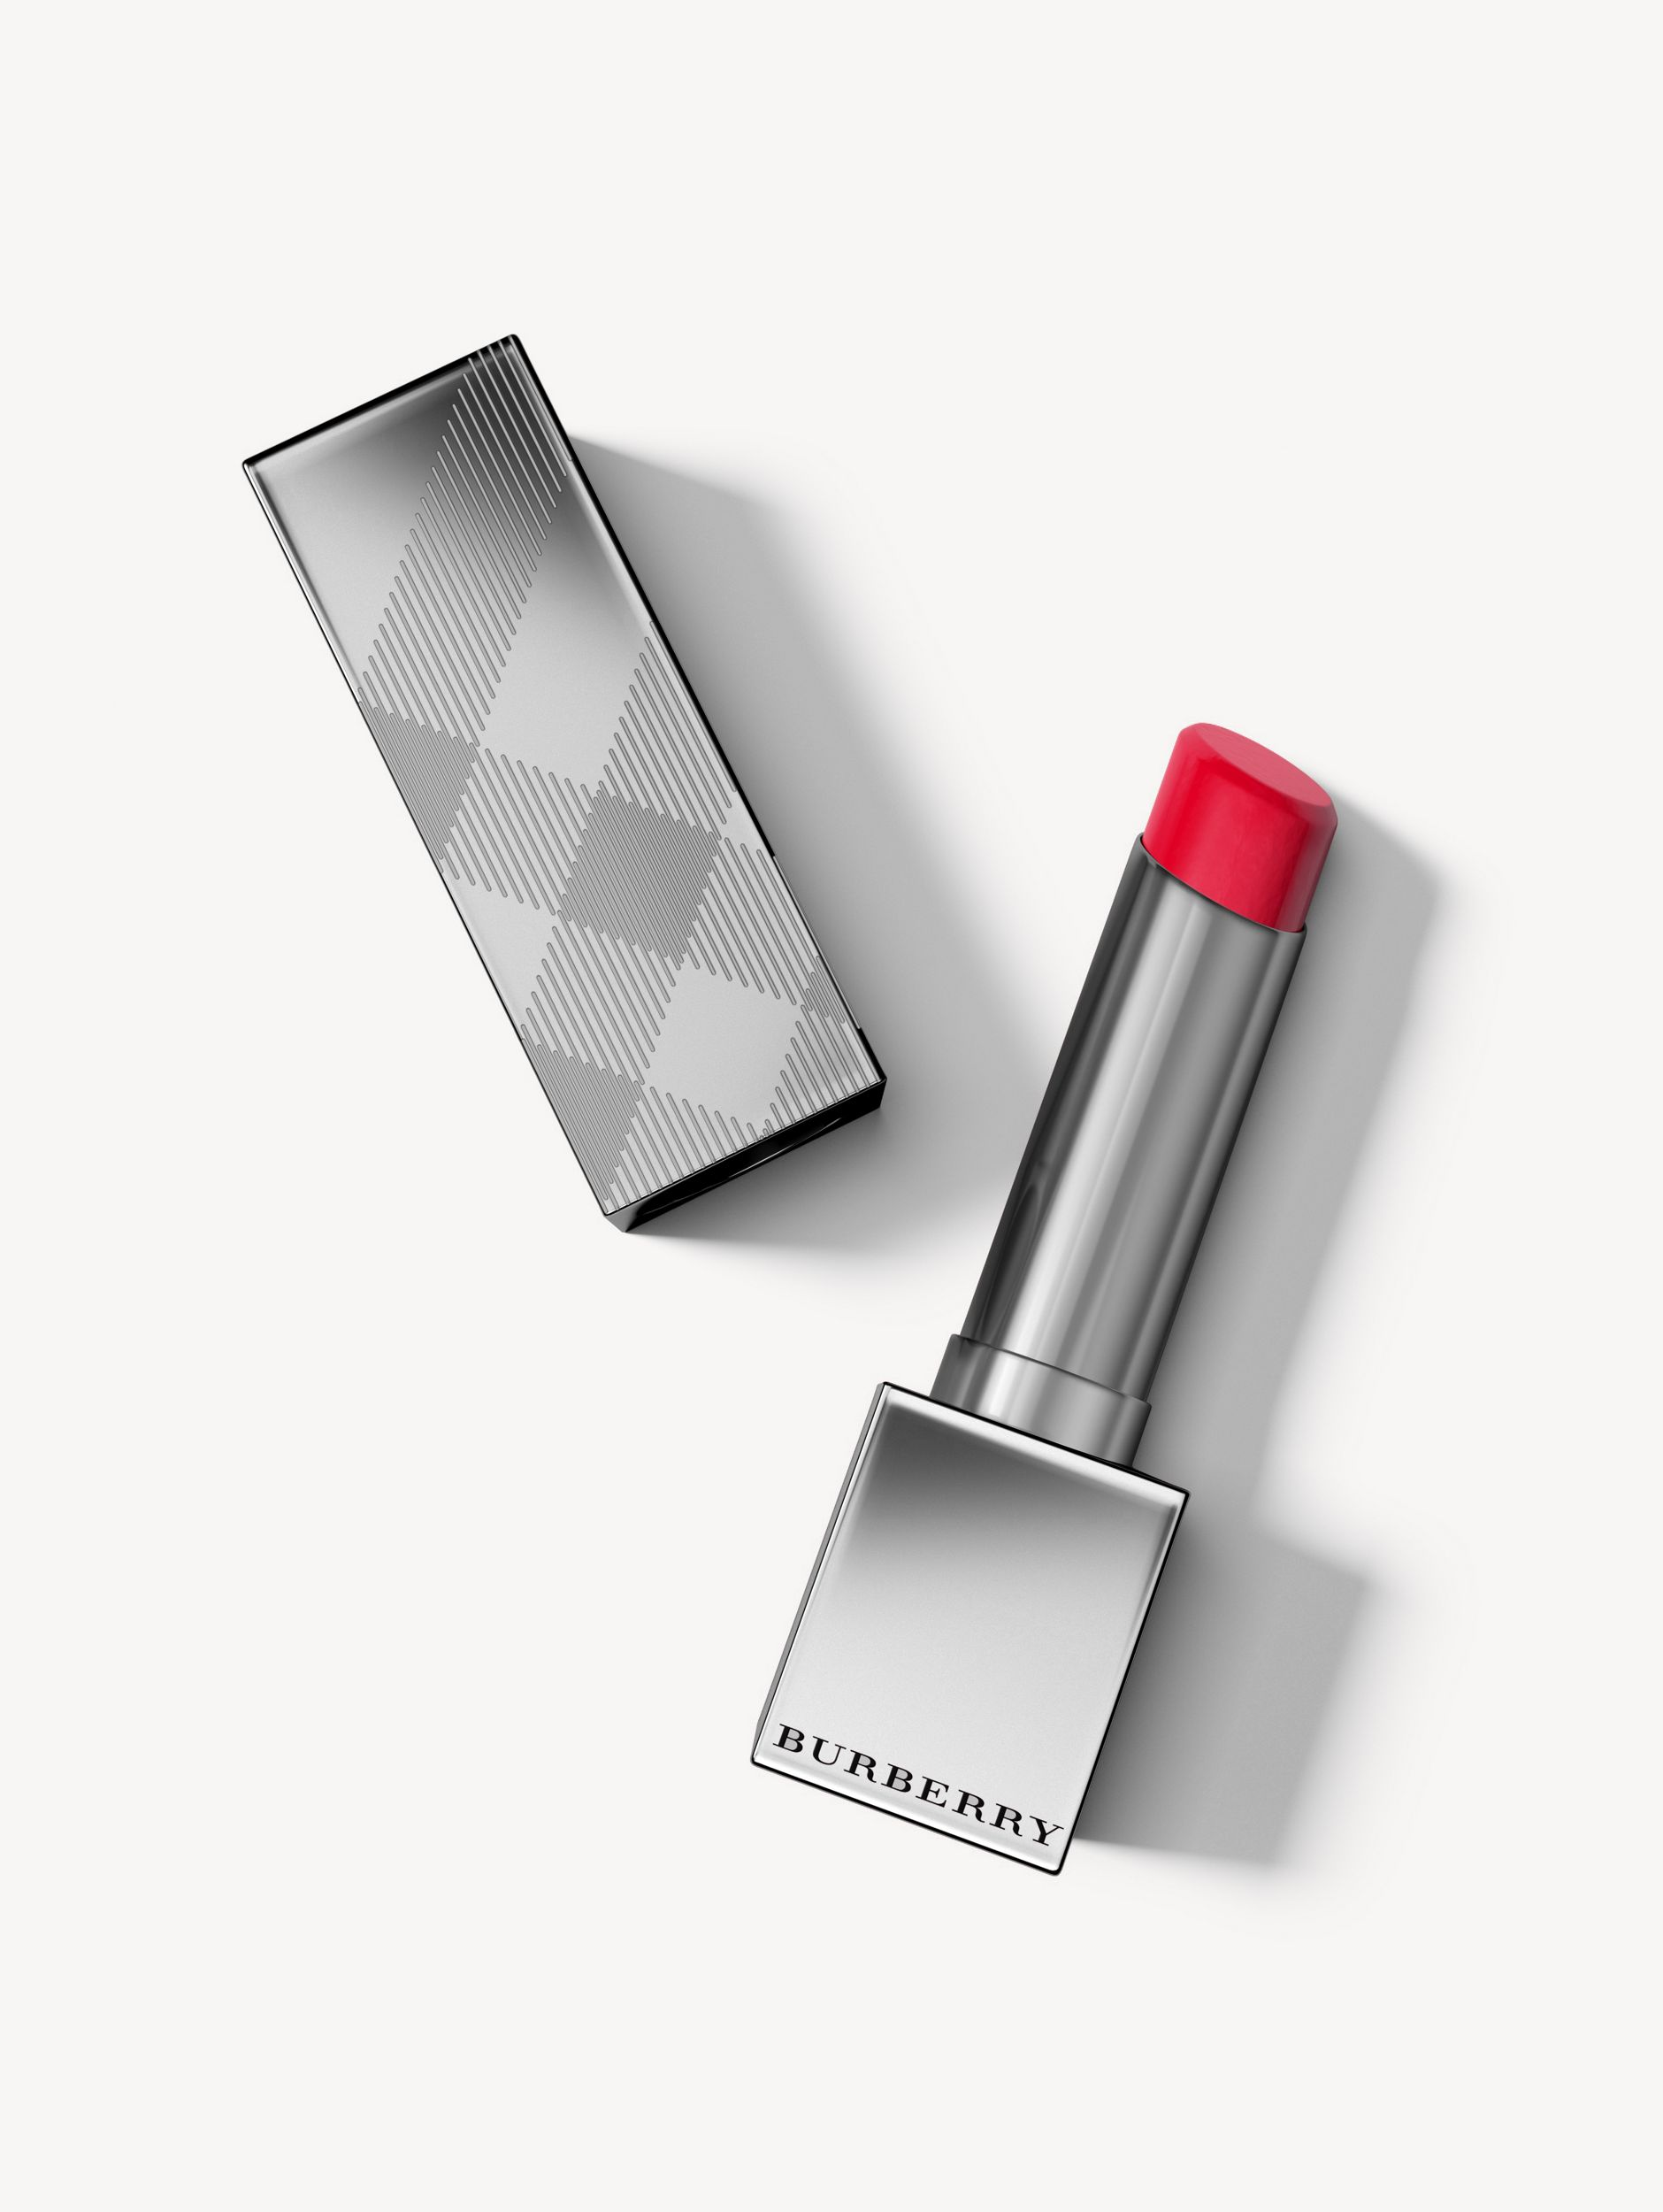 Burberry Kisses Sheer – Poppy Red No.309 - Women | Burberry United States - 1